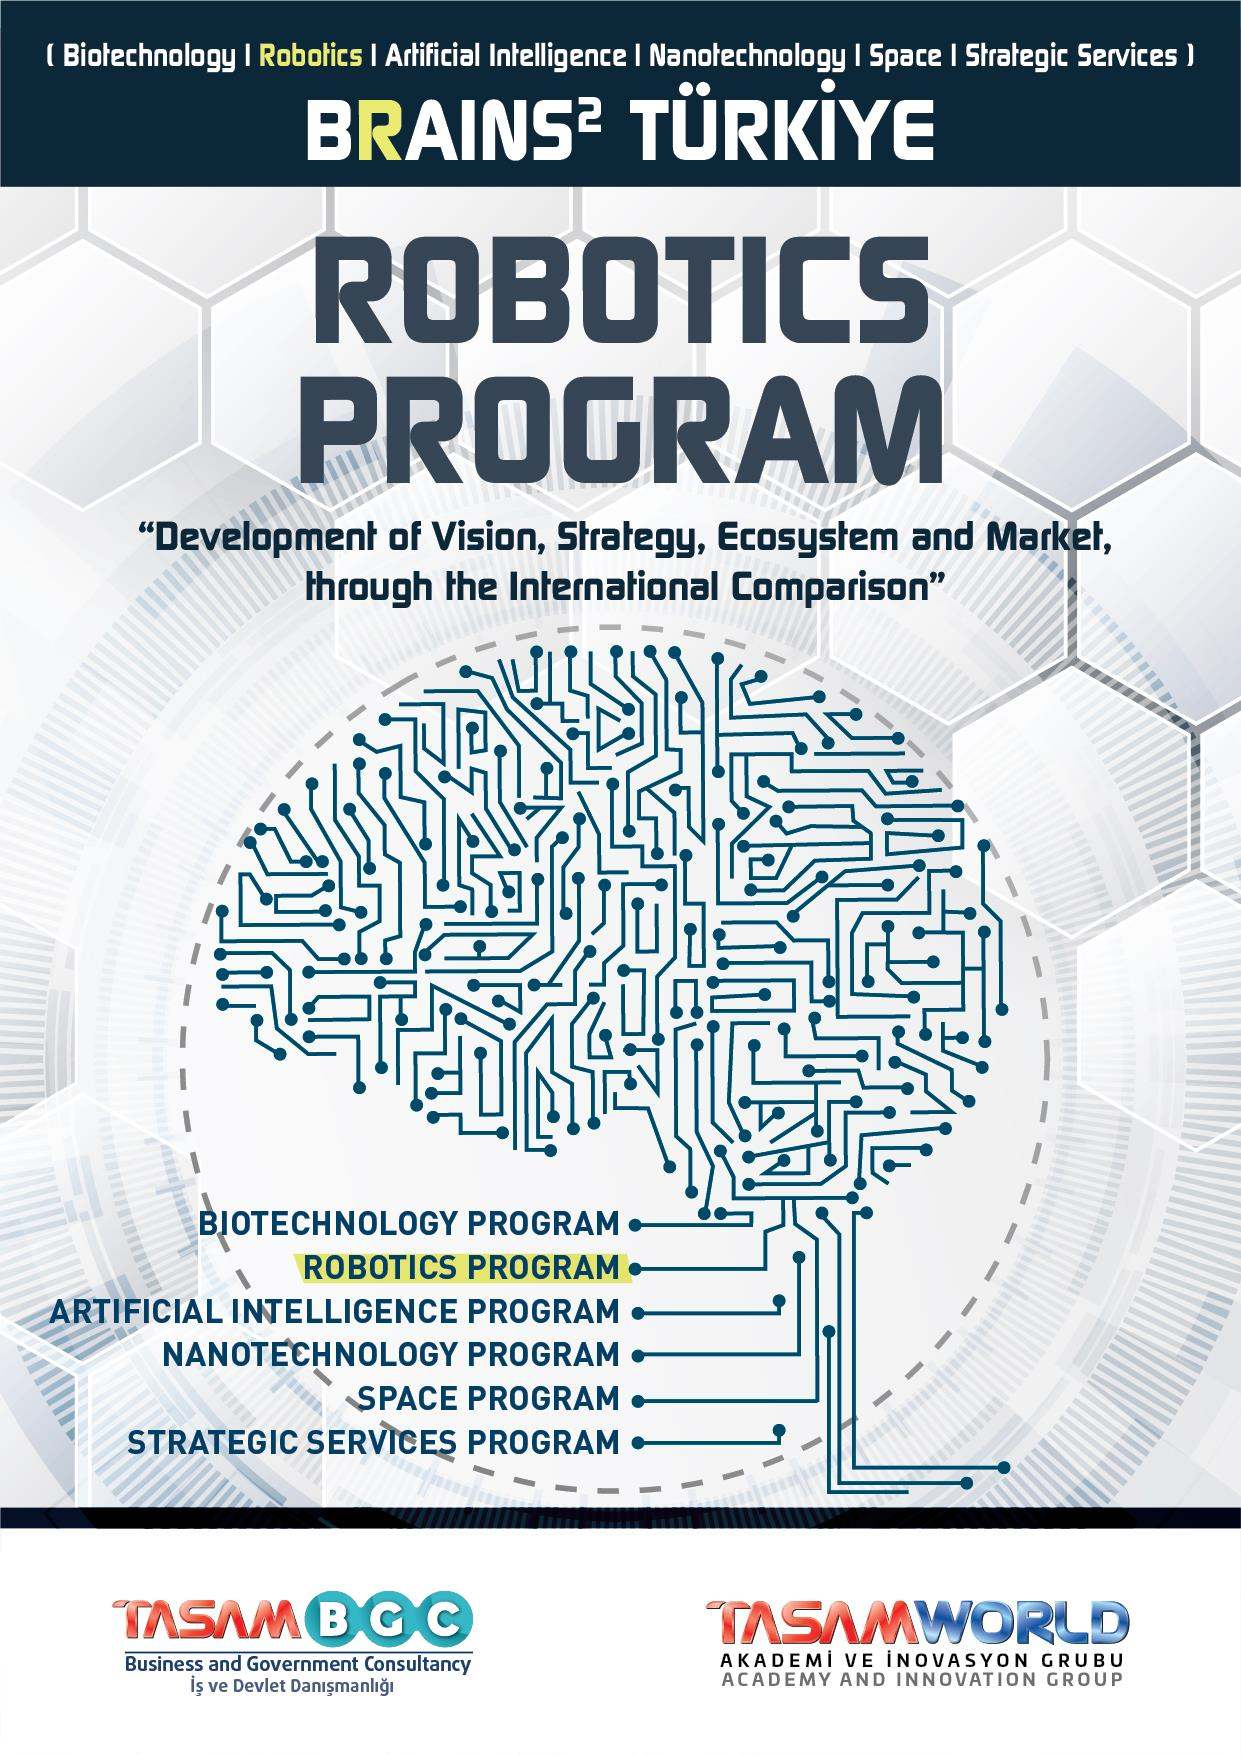 BRAINS² TÜRKİYE | Robotics Program